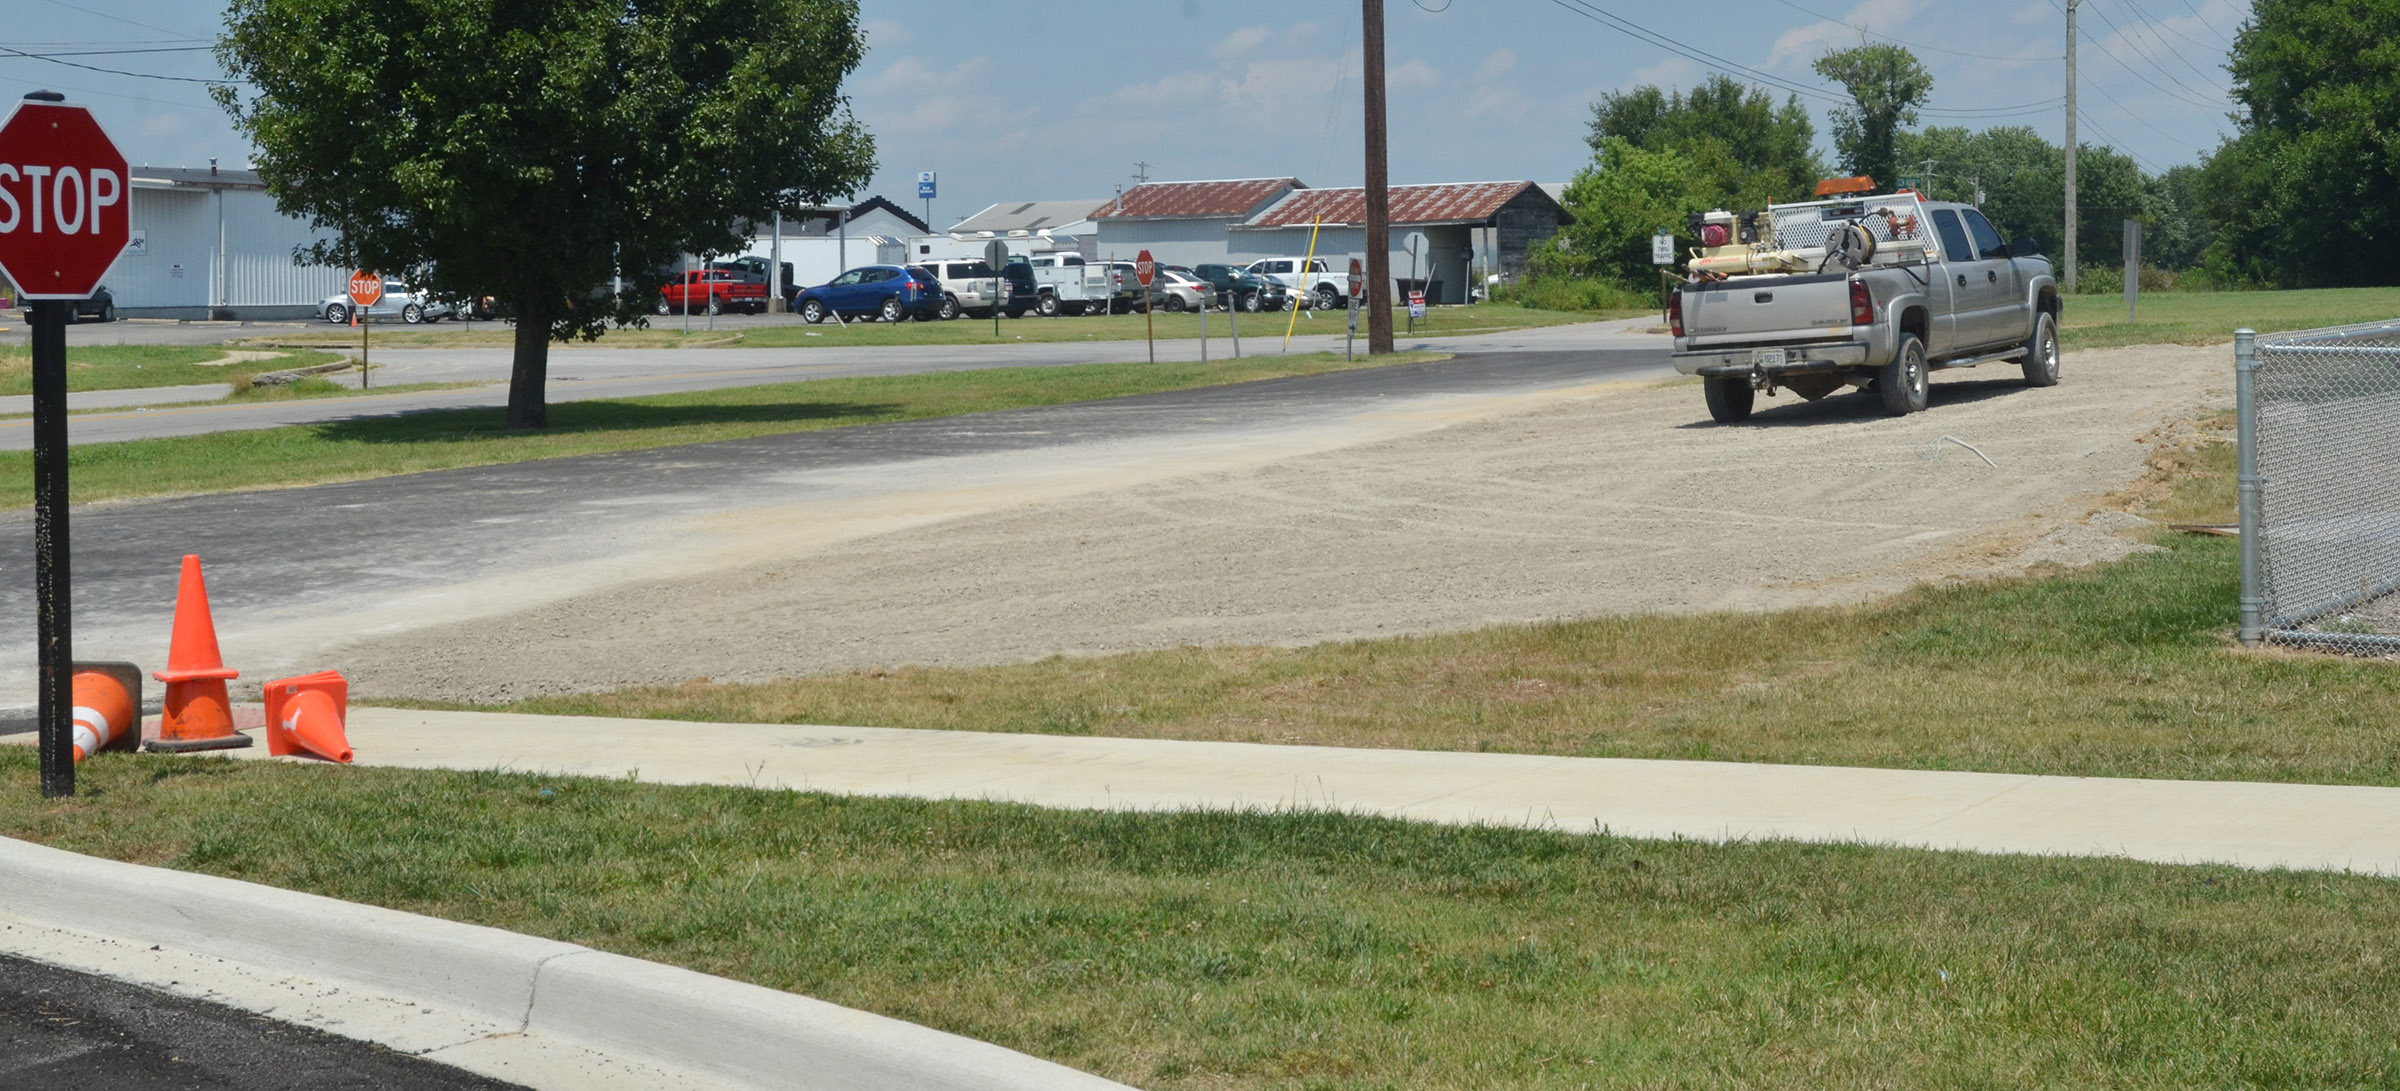 Additional parking has been created at CES, across from the CES preschool playground.